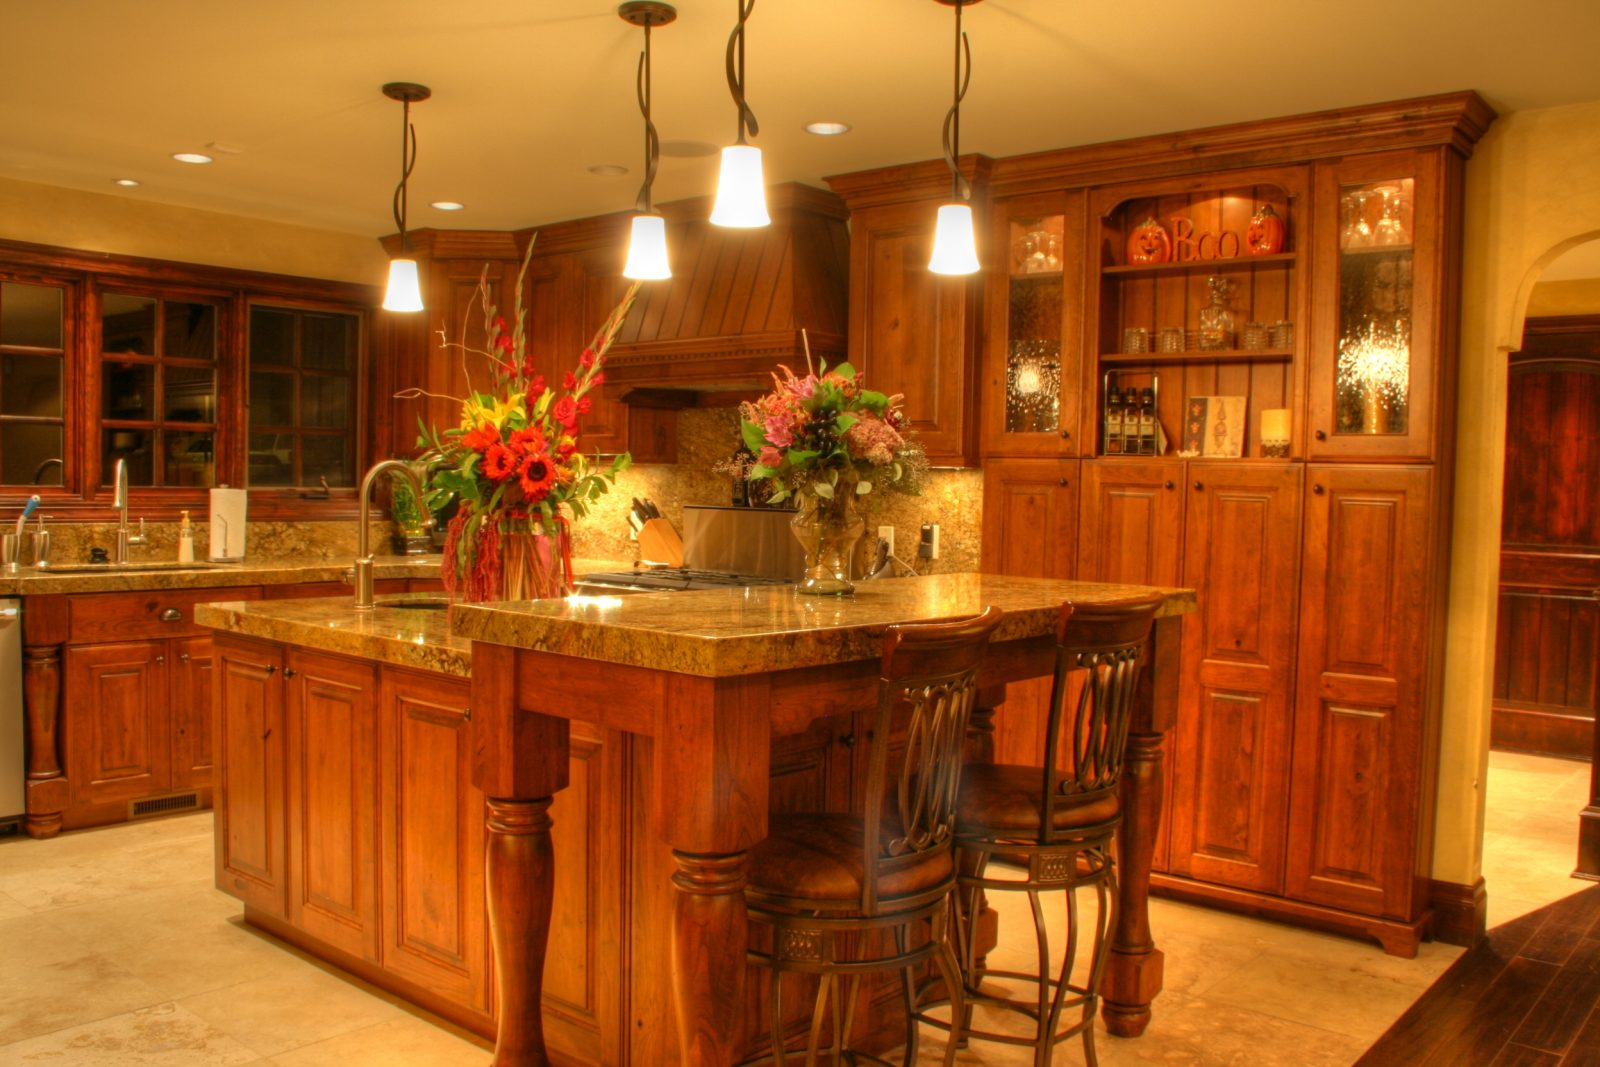 Kitchen Designs & Remodeling Addition Kitchen Designs & Remodeling Addition Dining Room Before Remodel Design | Renovation Design Group